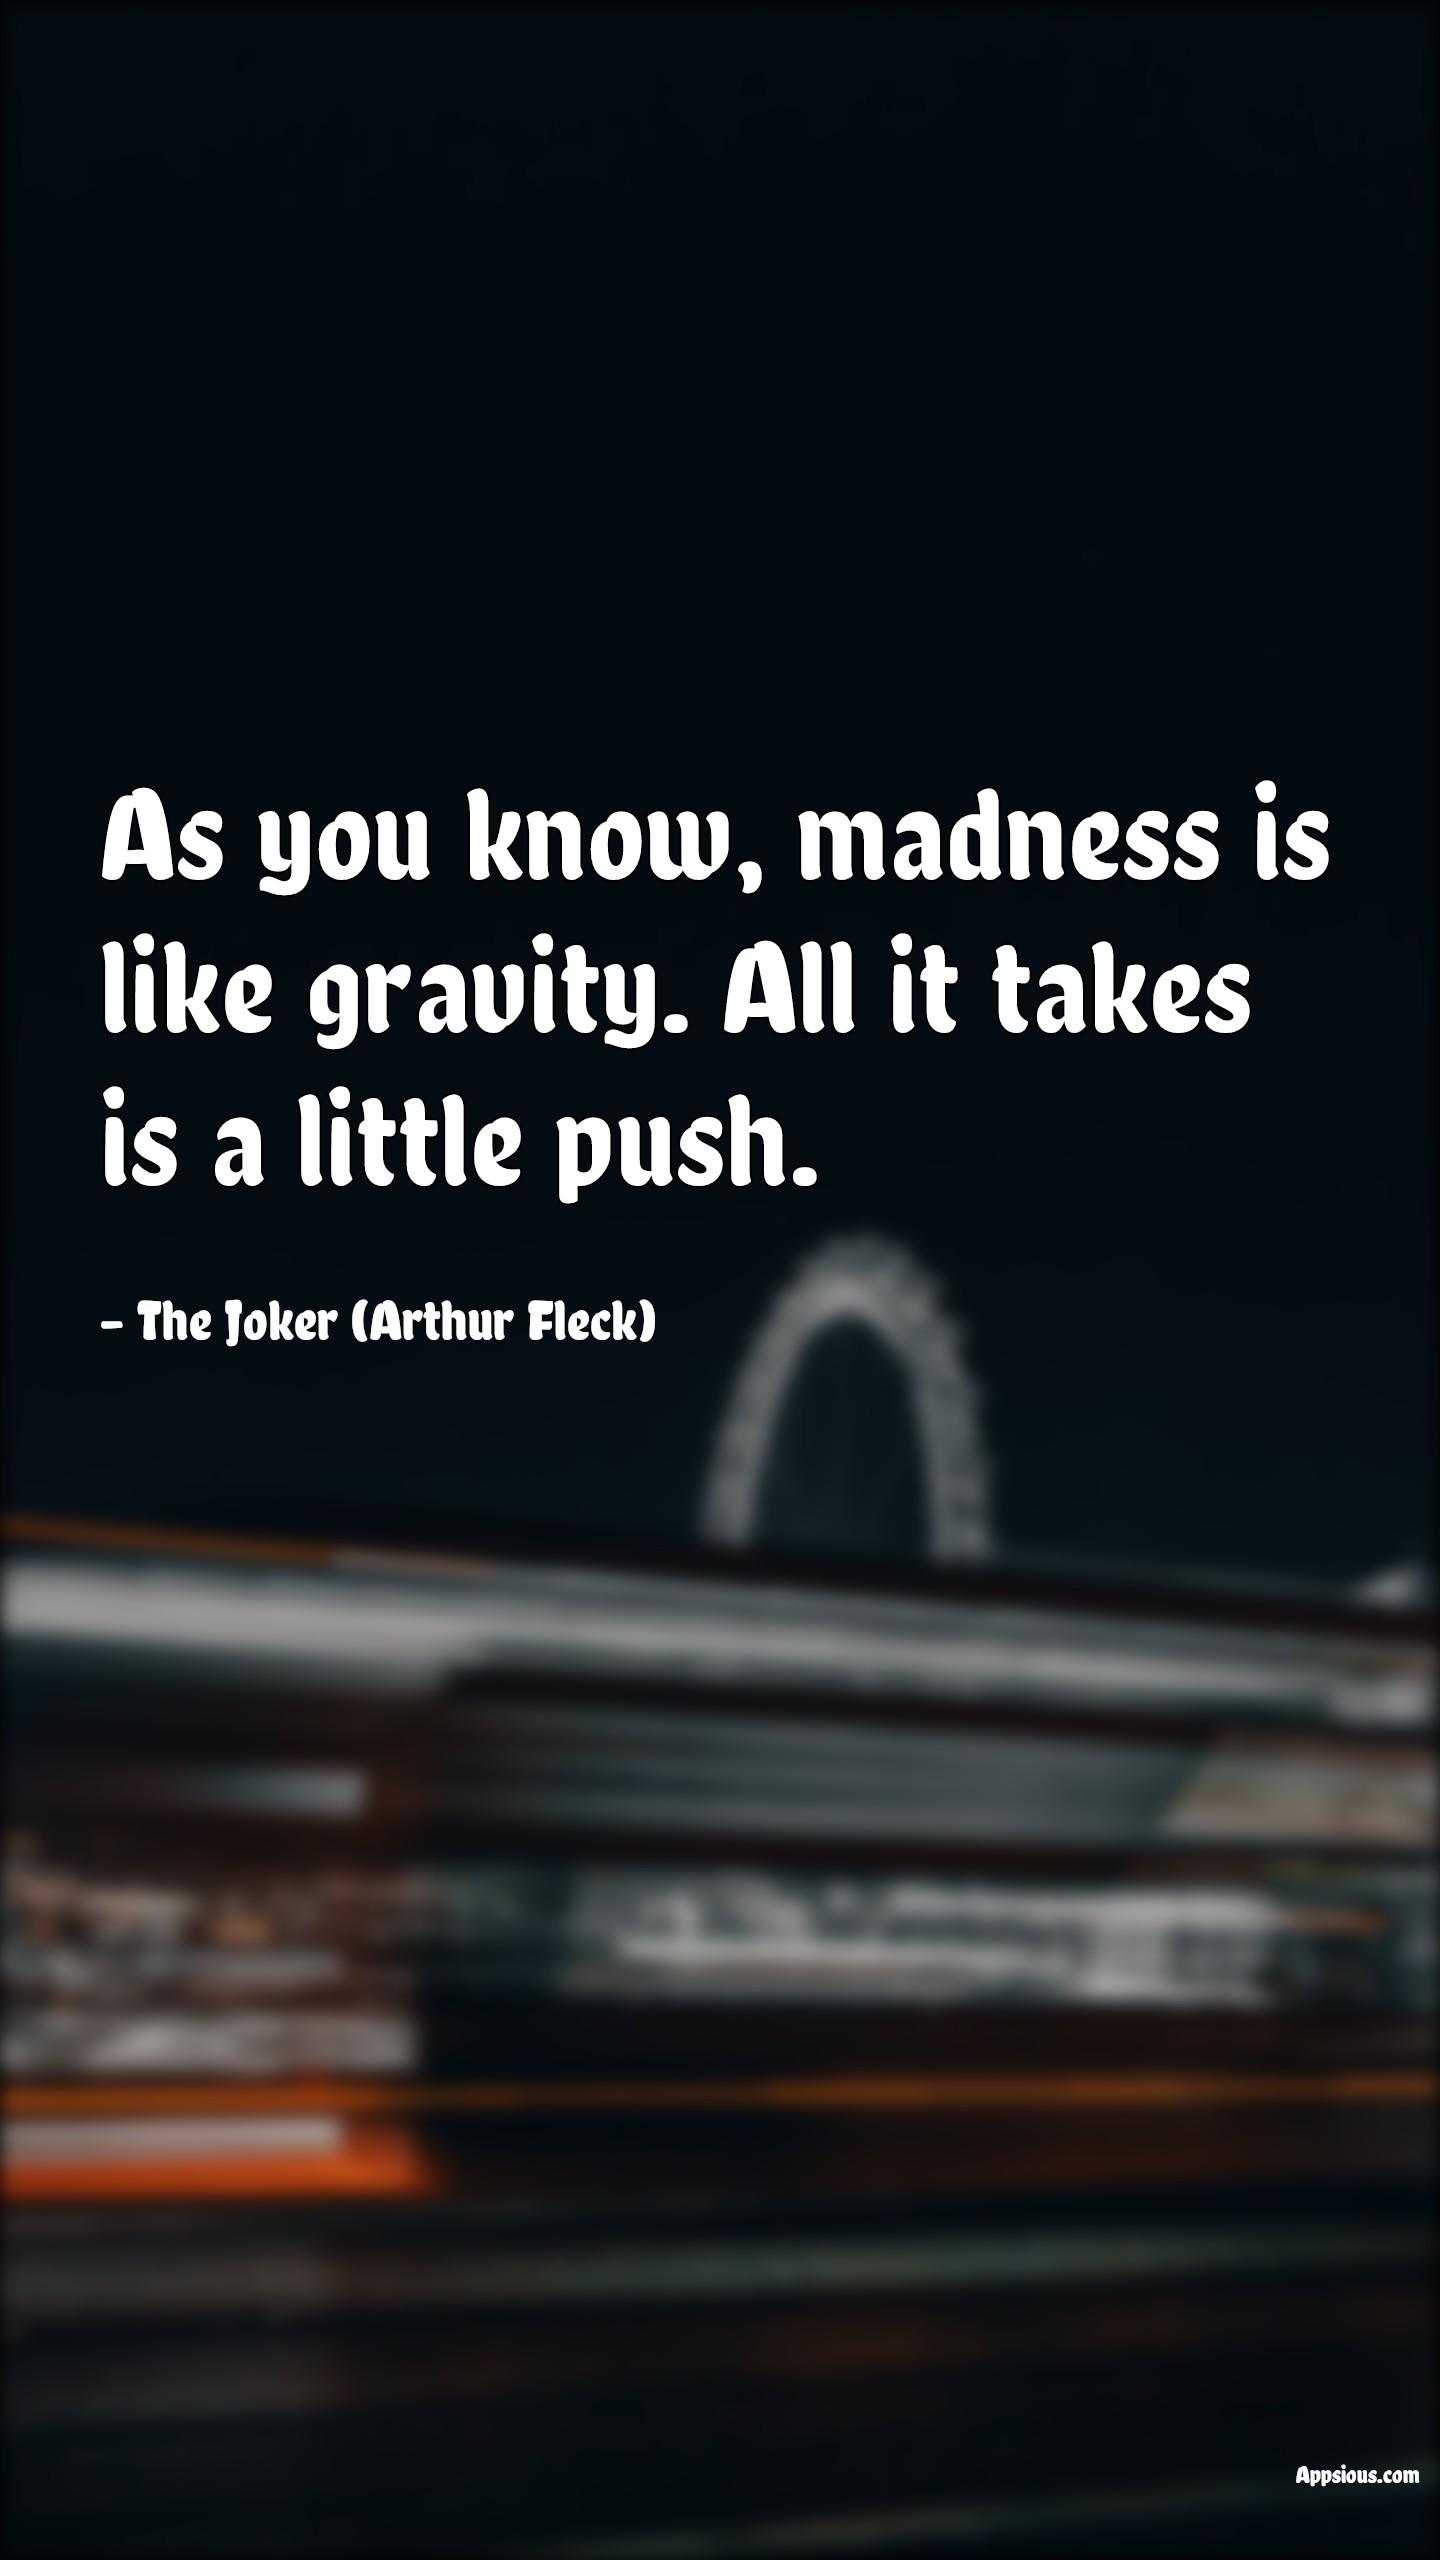 As you know, madness is like gravity. All it takes is a little push.